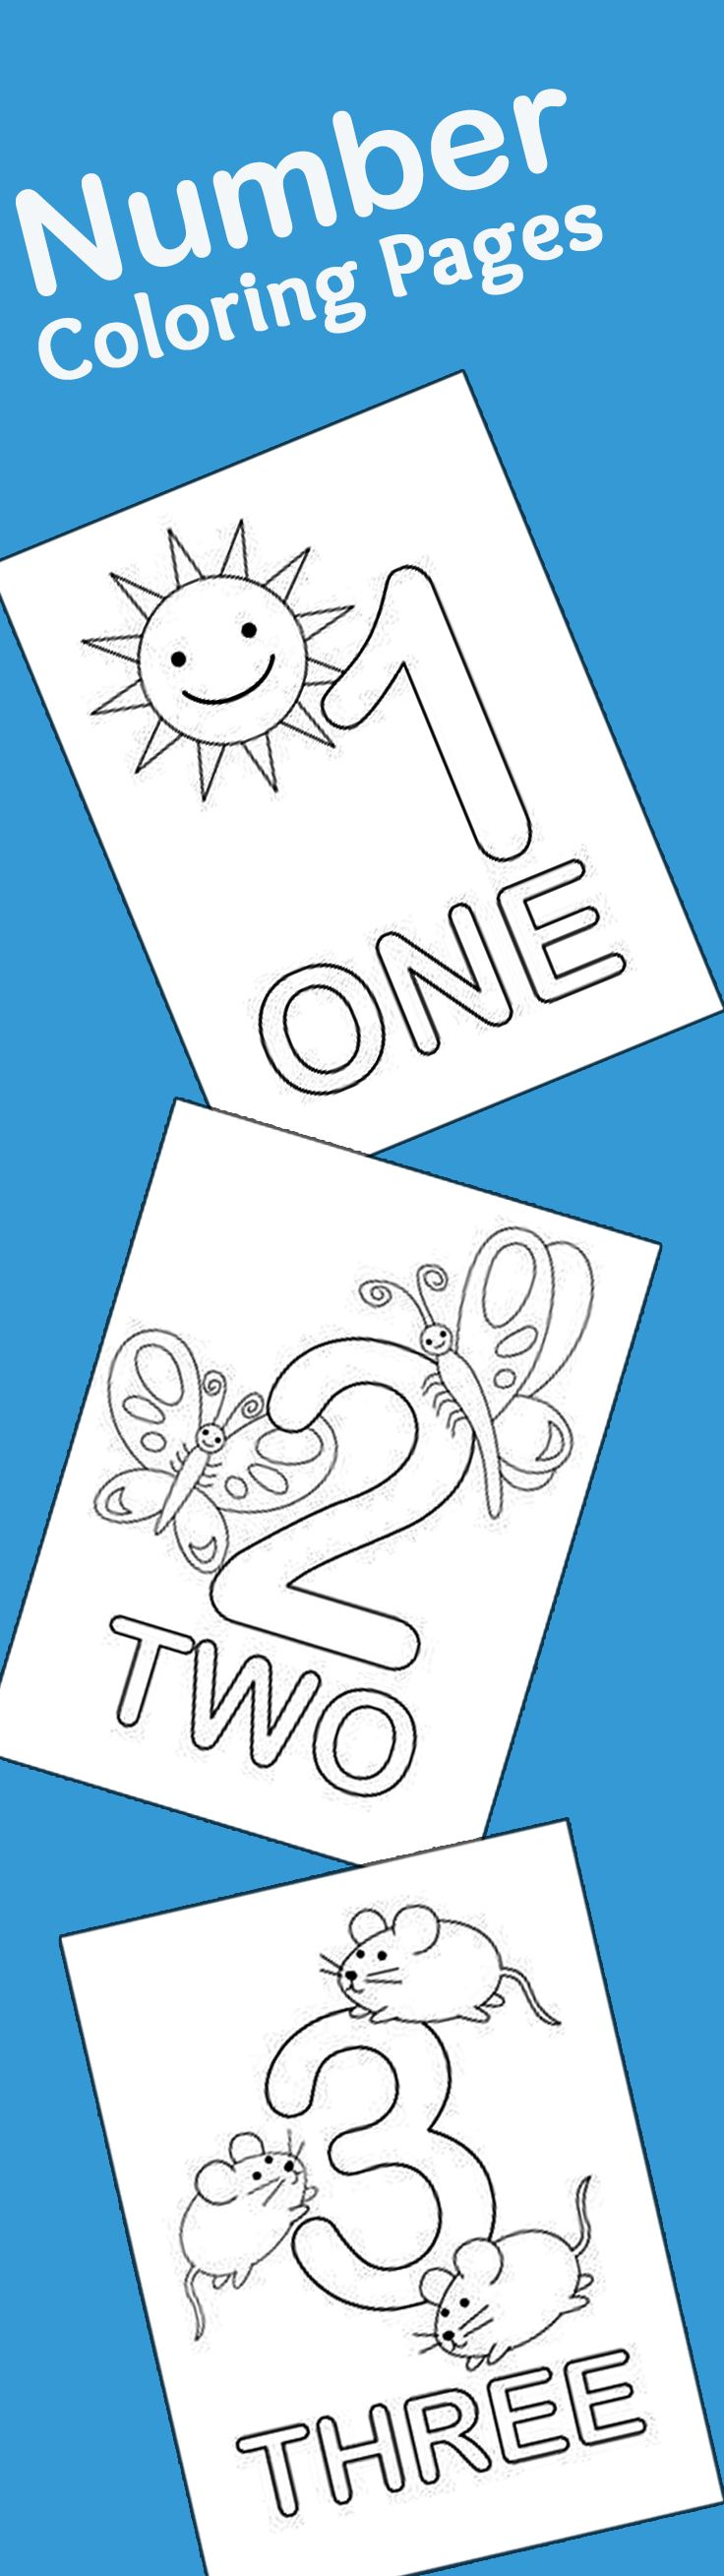 top 21 free printable number coloring pages online - Preschool Color Games Online Free